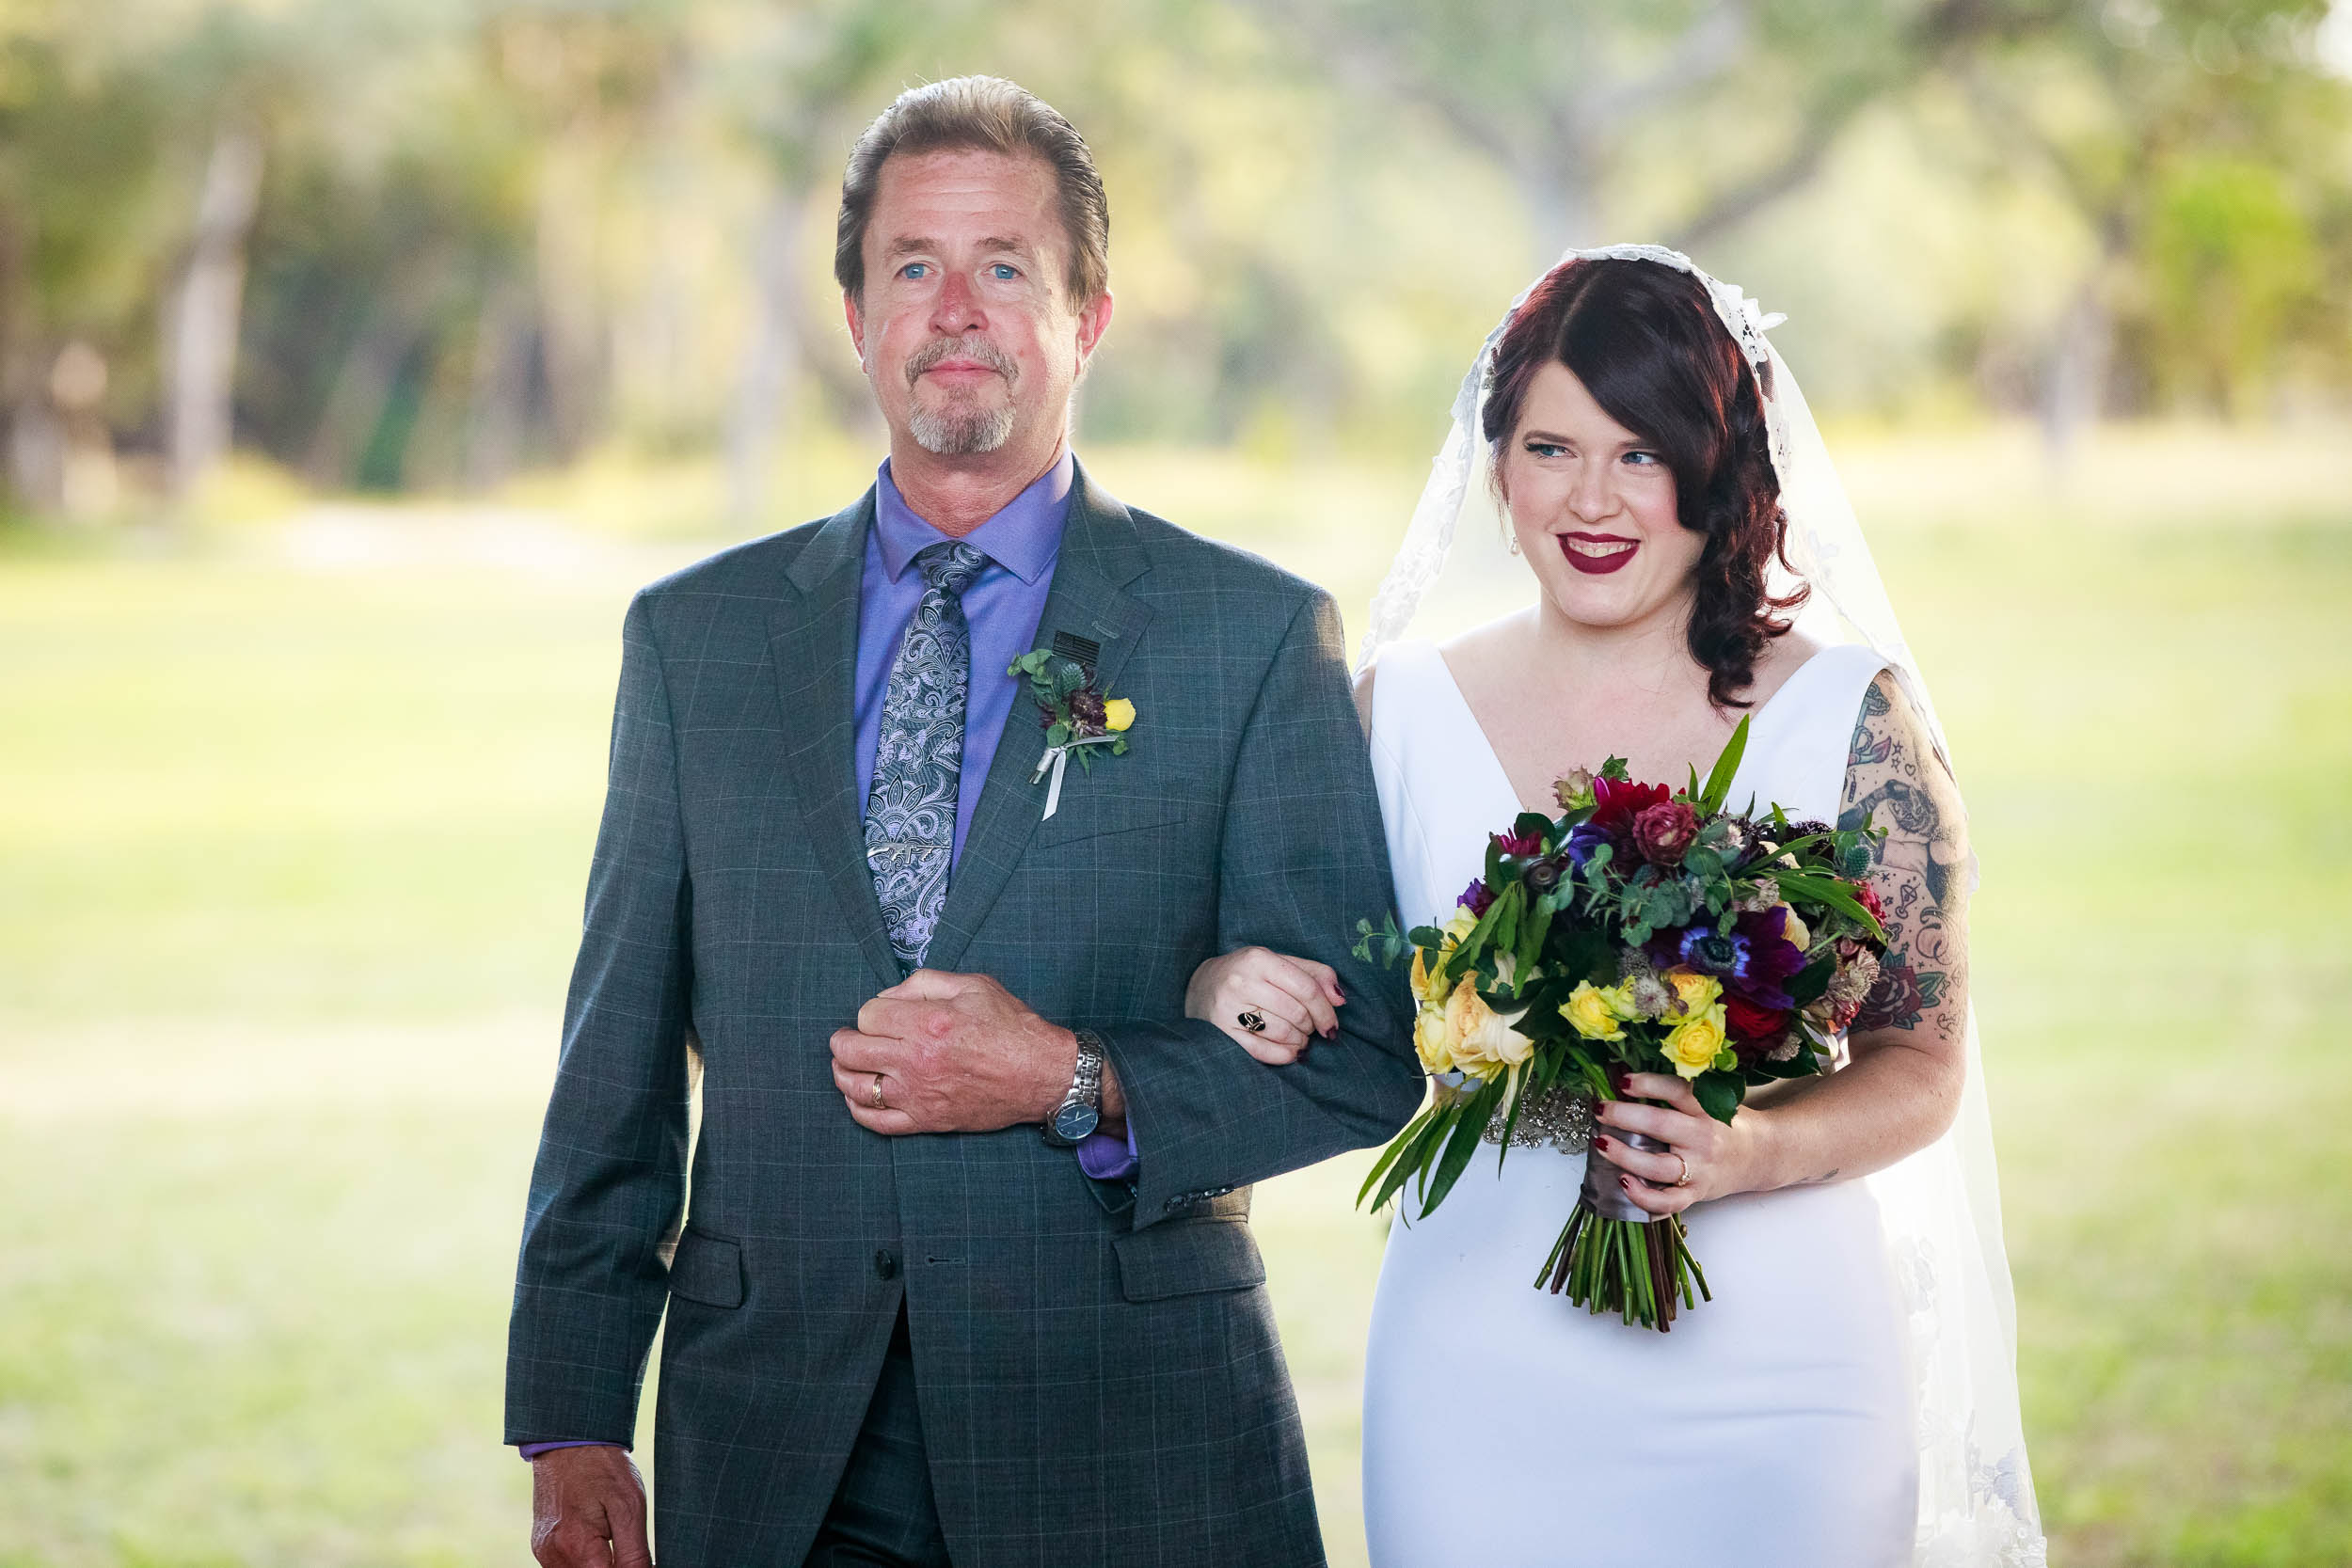 Bride and father walk down the aisle during a Montesino Ranch wedding Austin, Texas.